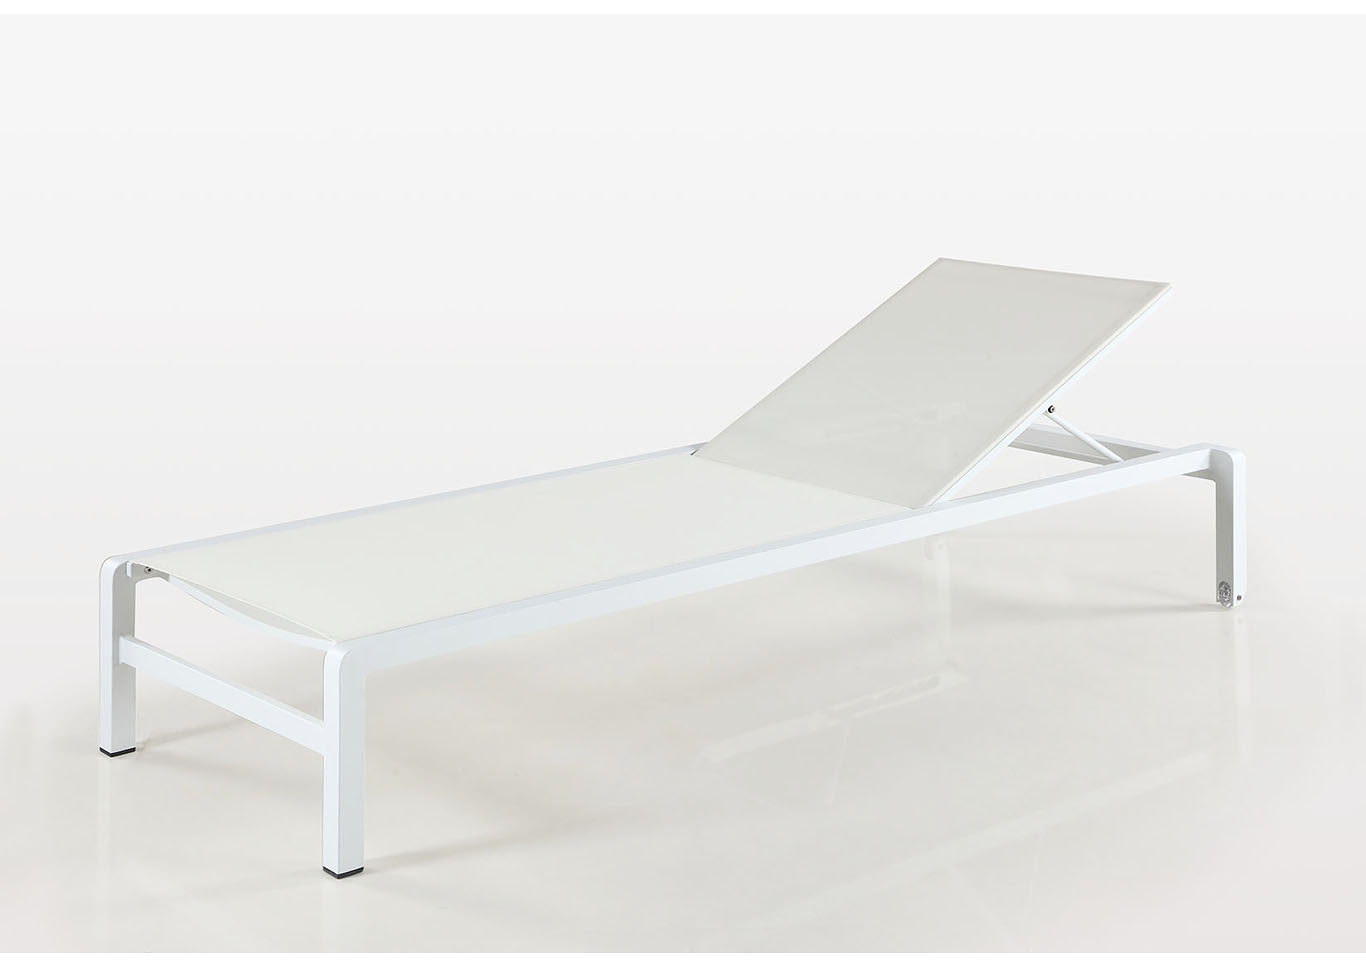 Malibu Matte White Outdoor UV Resistant Lounge Chair,Chintaly Imports